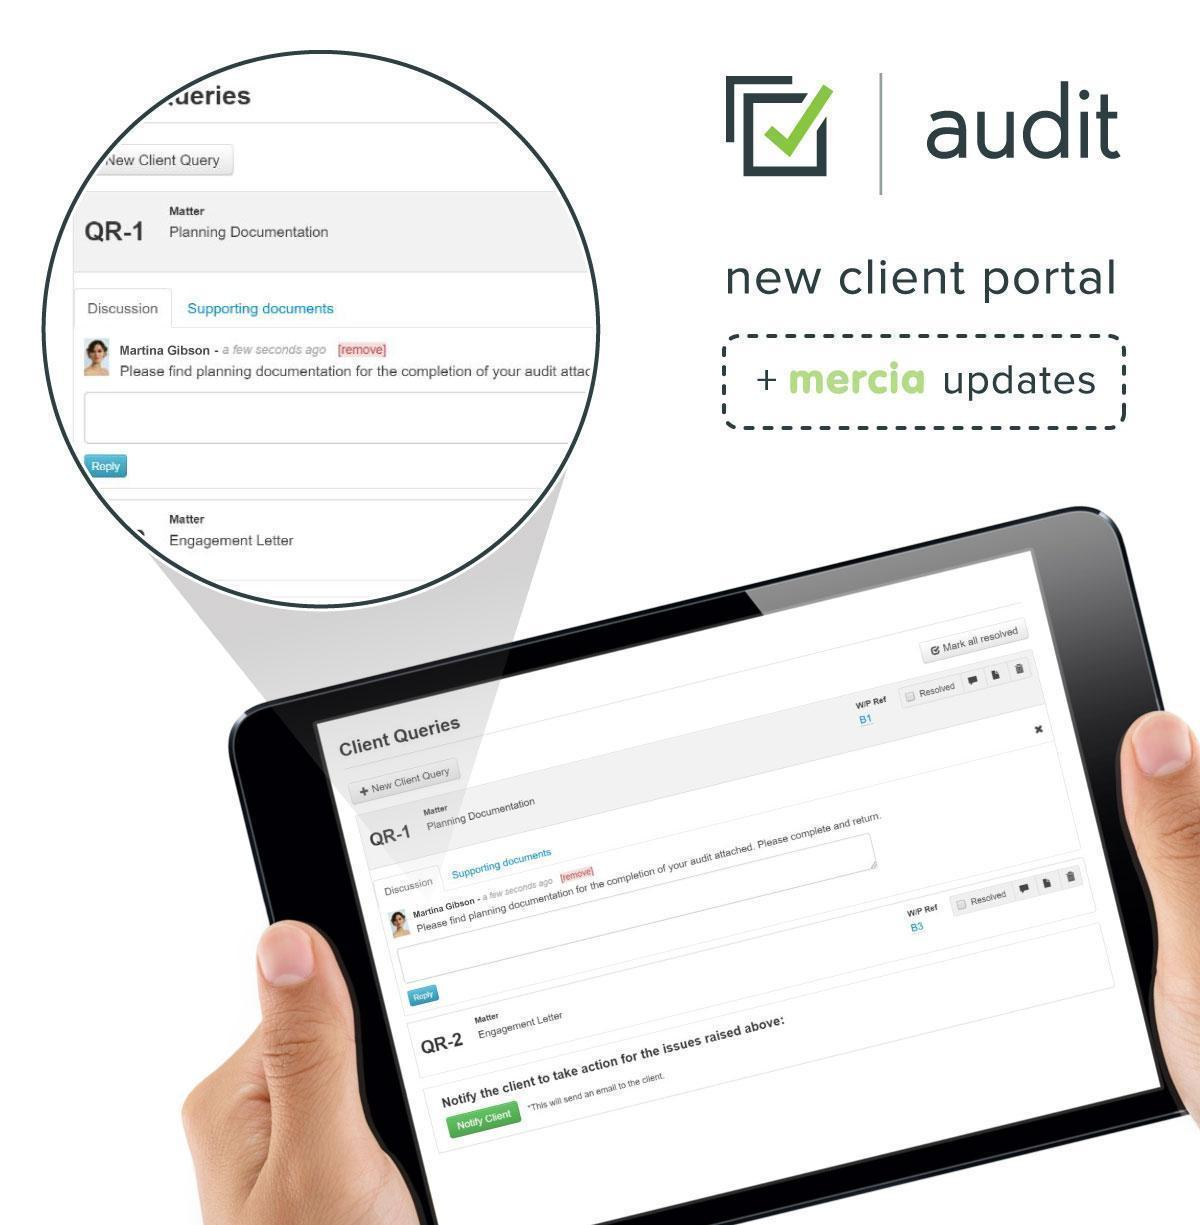 client portal uk and mercia updates